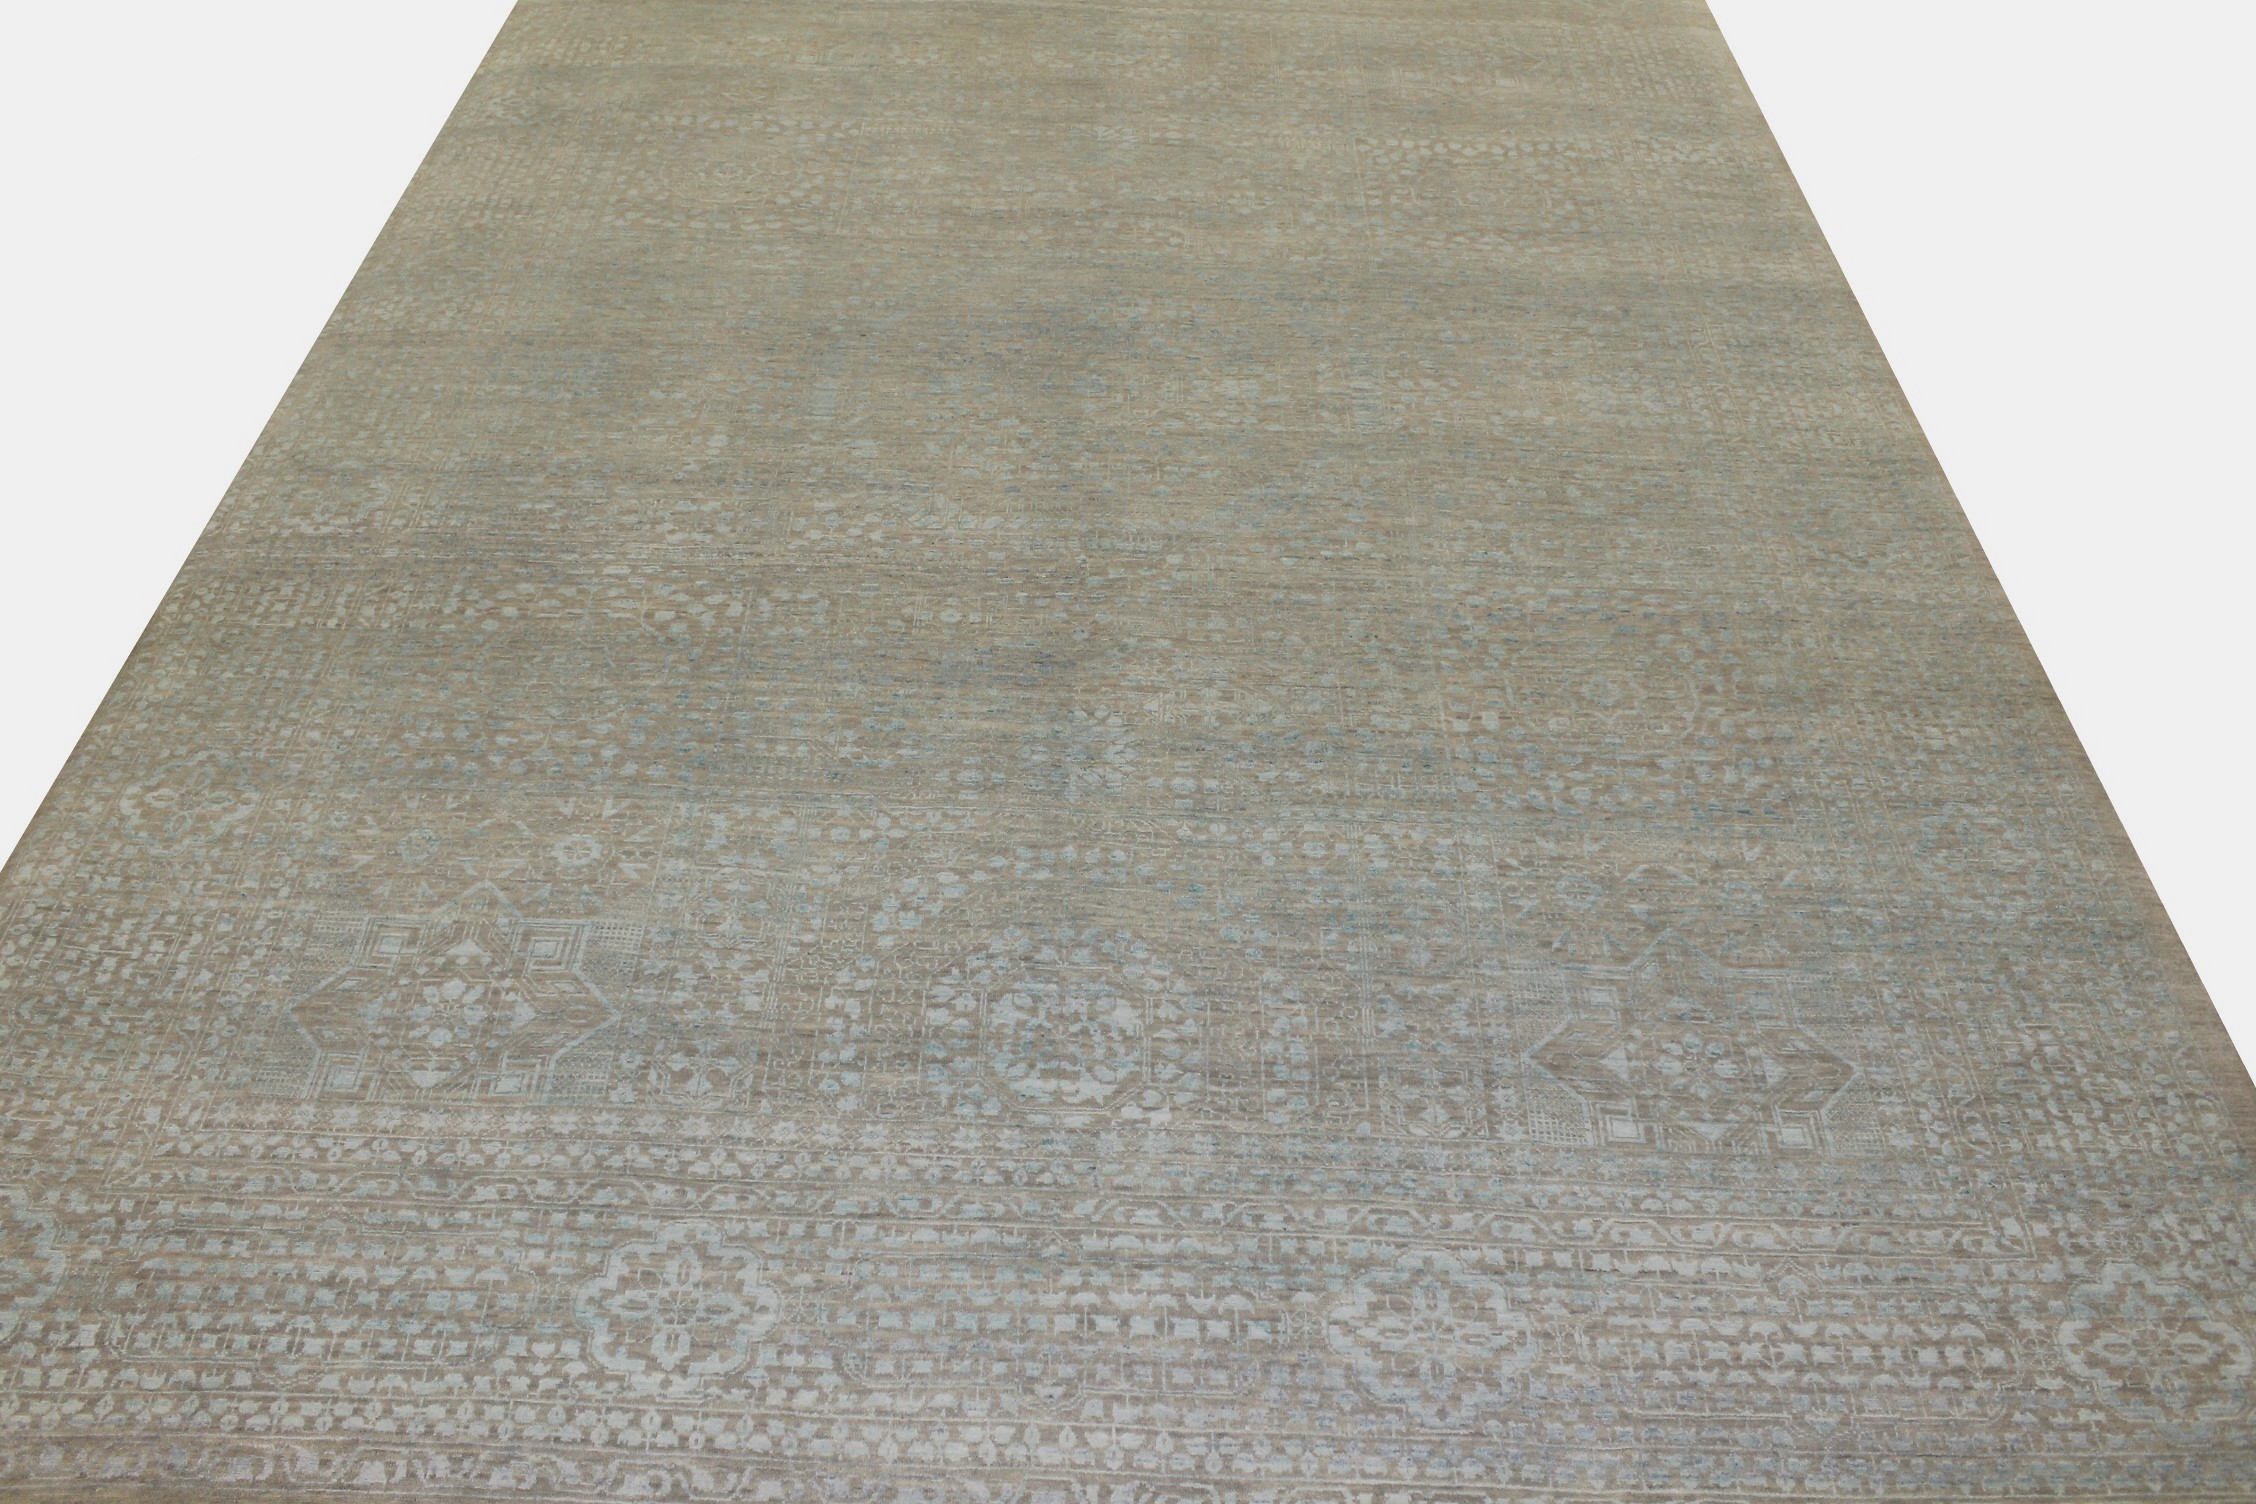 10x14 Contemporary Hand Knotted Wool Area Rug - MR021568